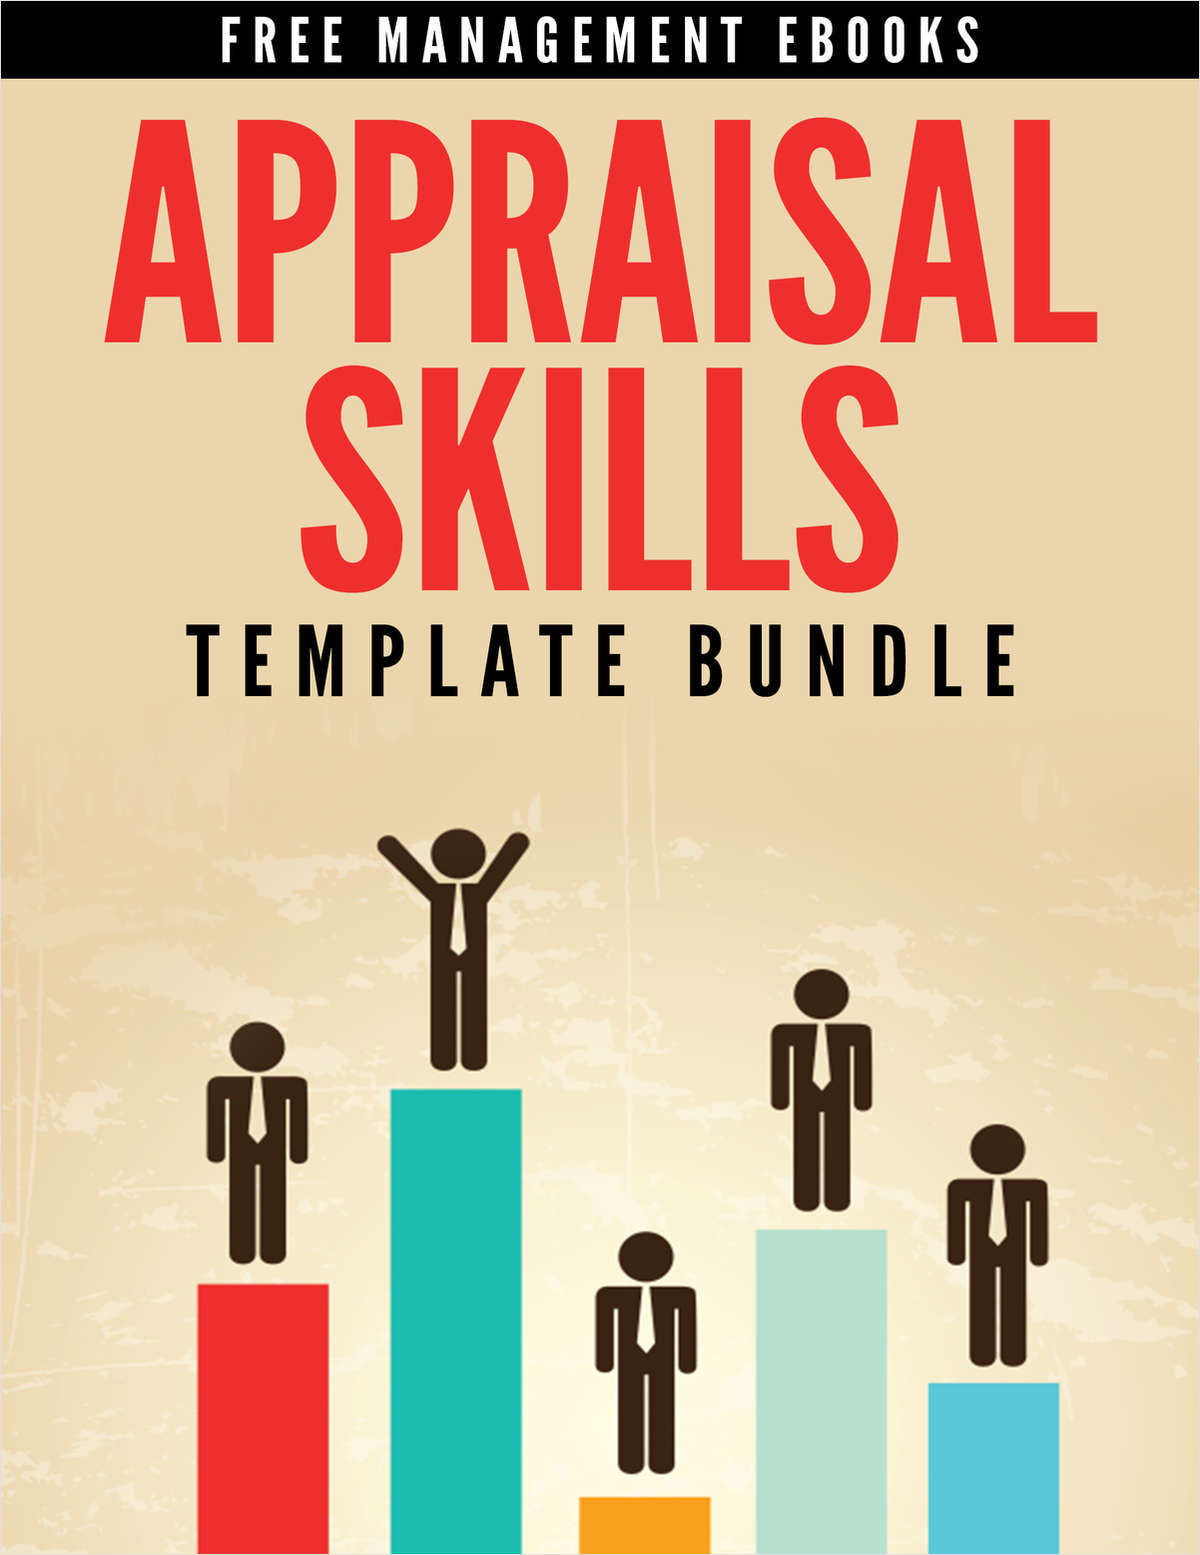 Appraisal Skills Template Bundle